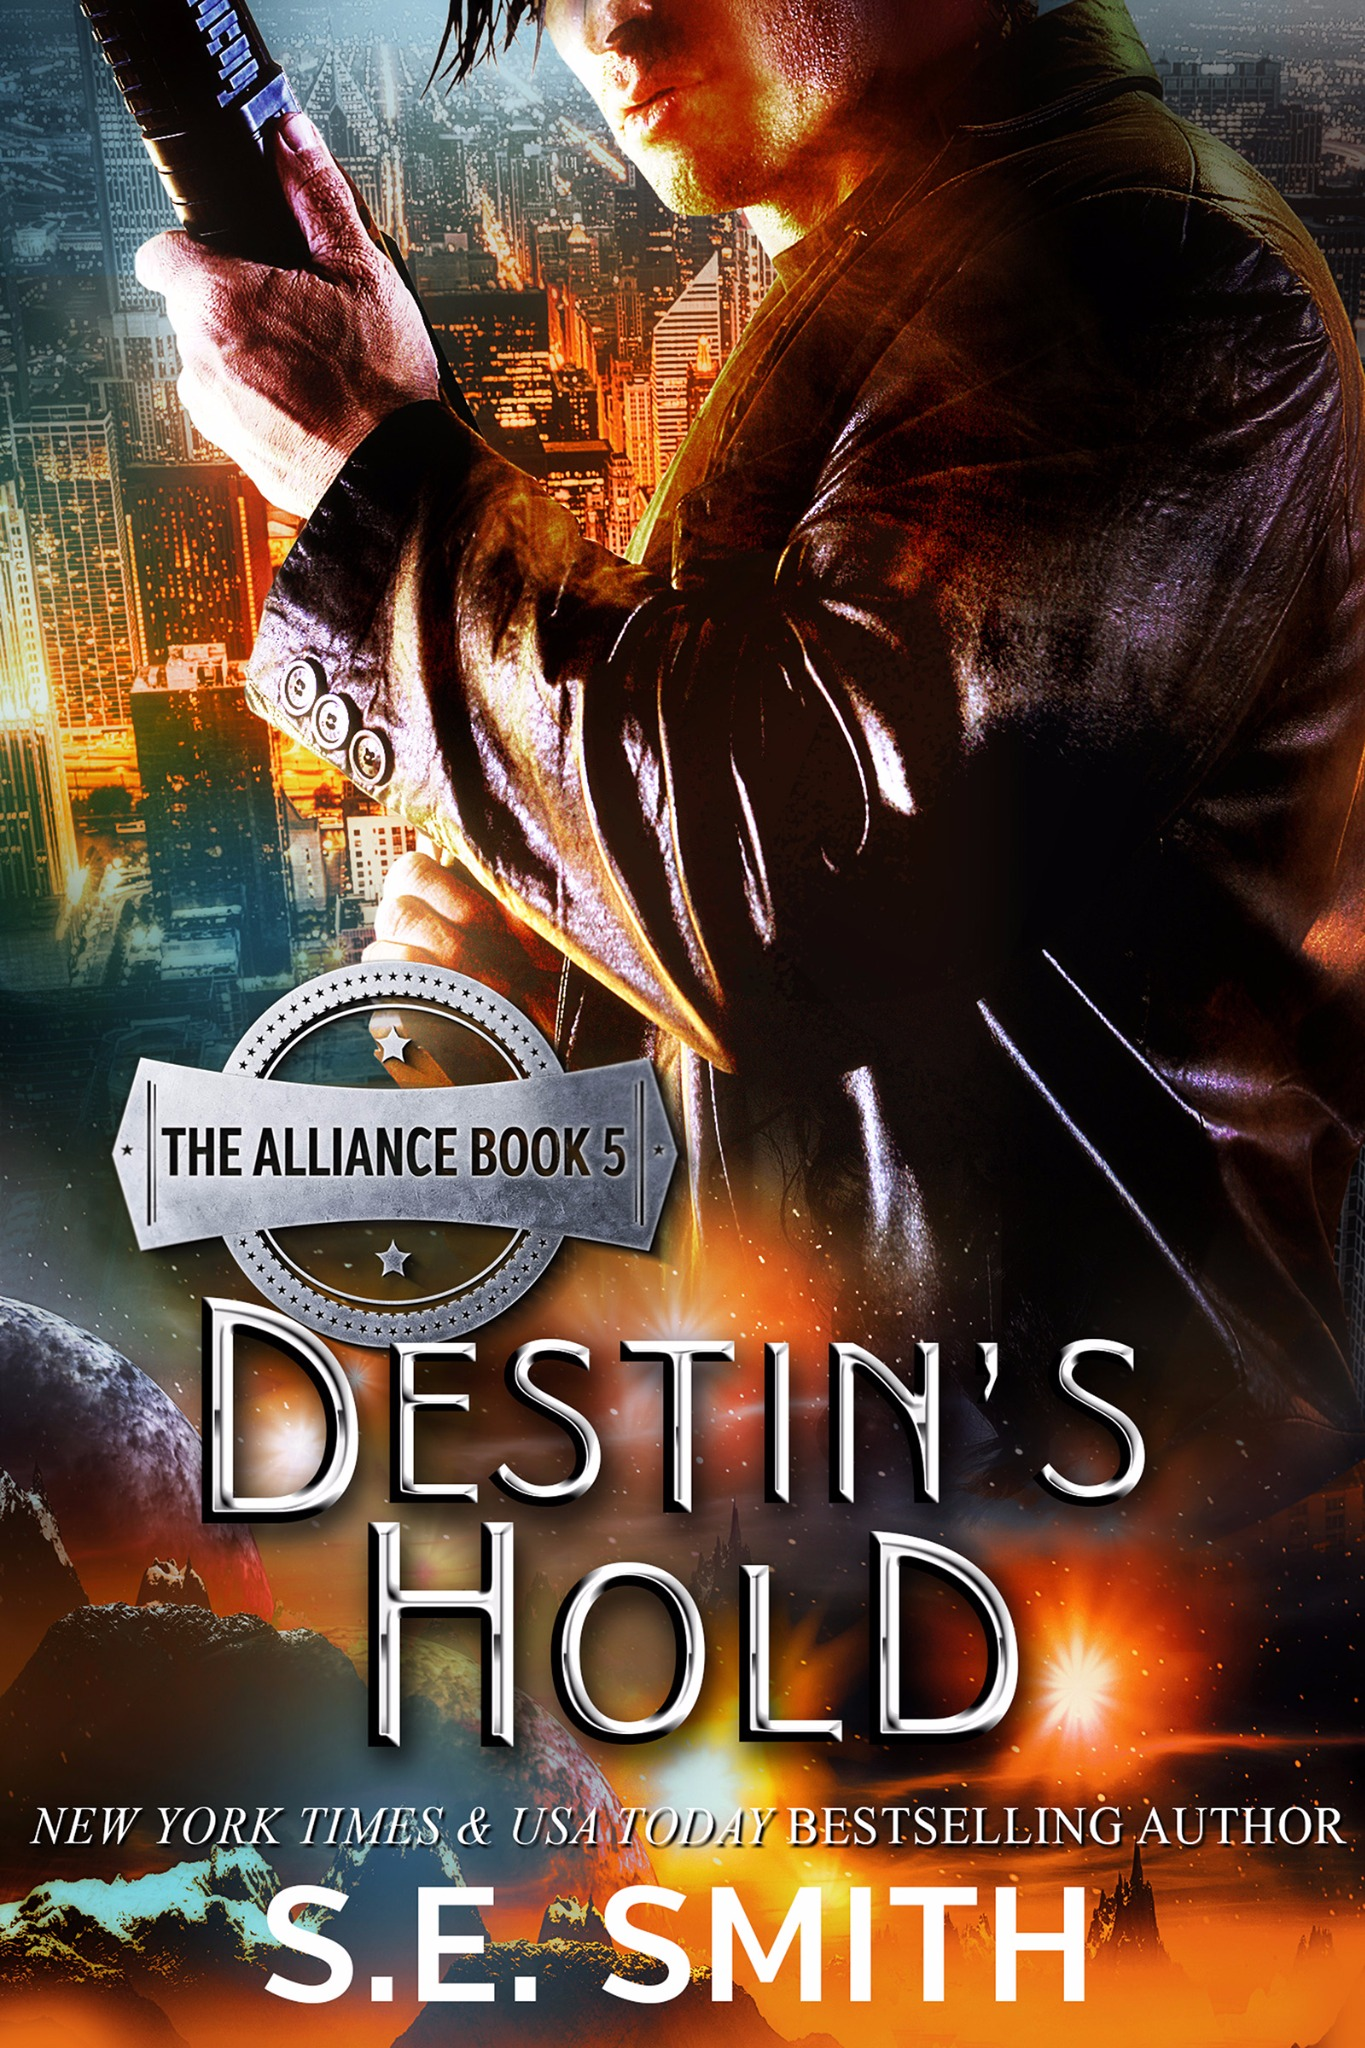 Destin's Hold: The Alliance Book 5 (Paperback)